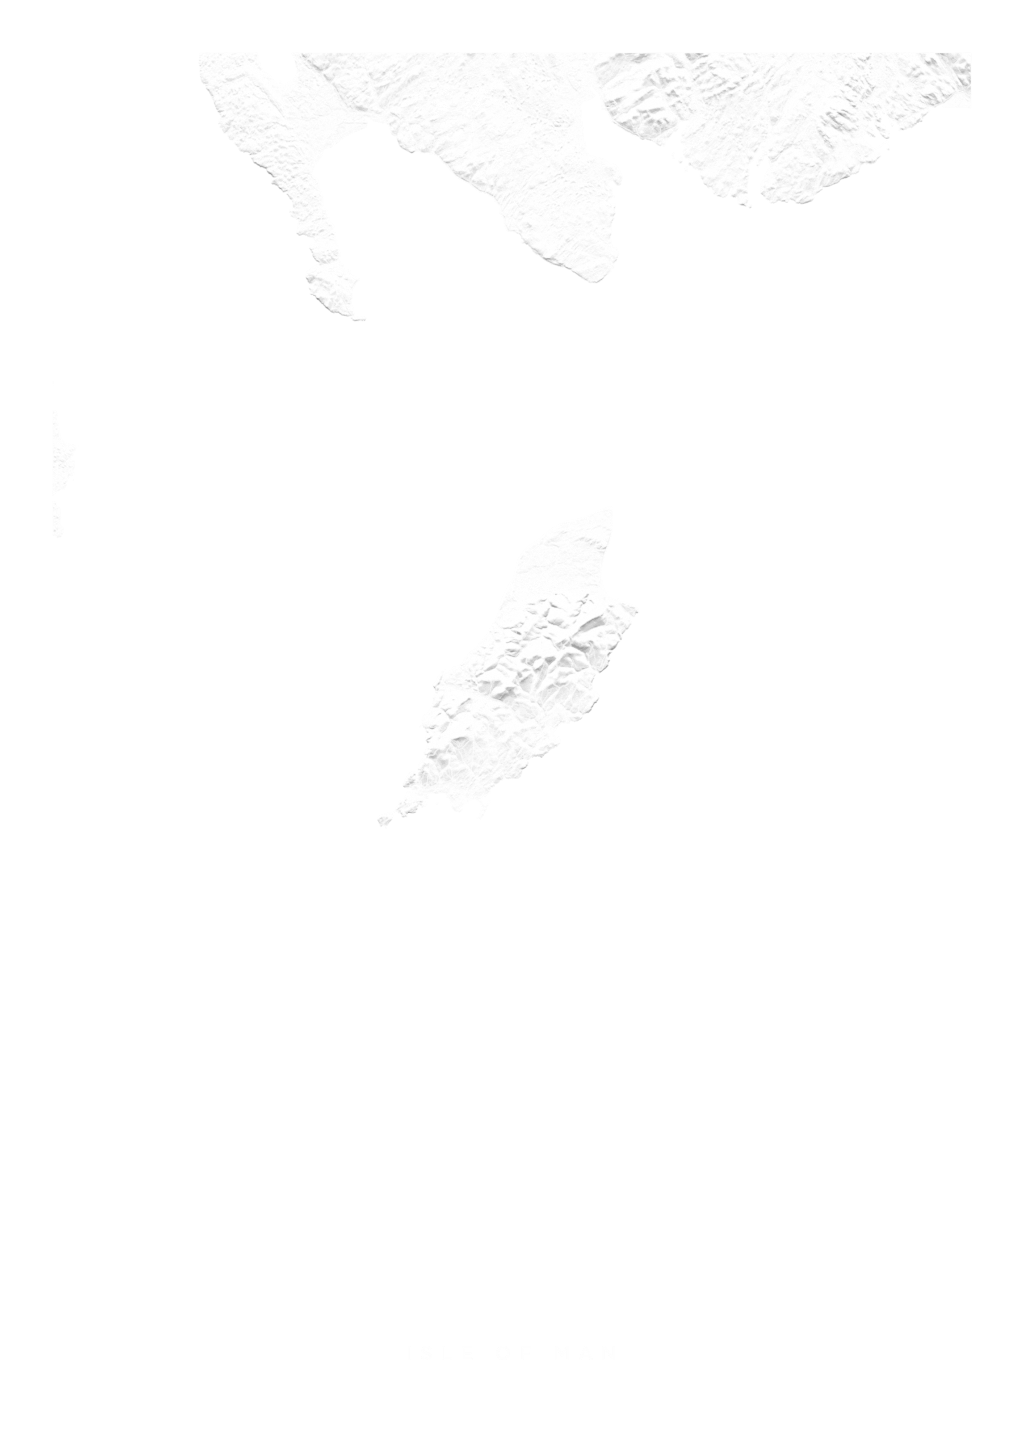 Isle Of Man wall map